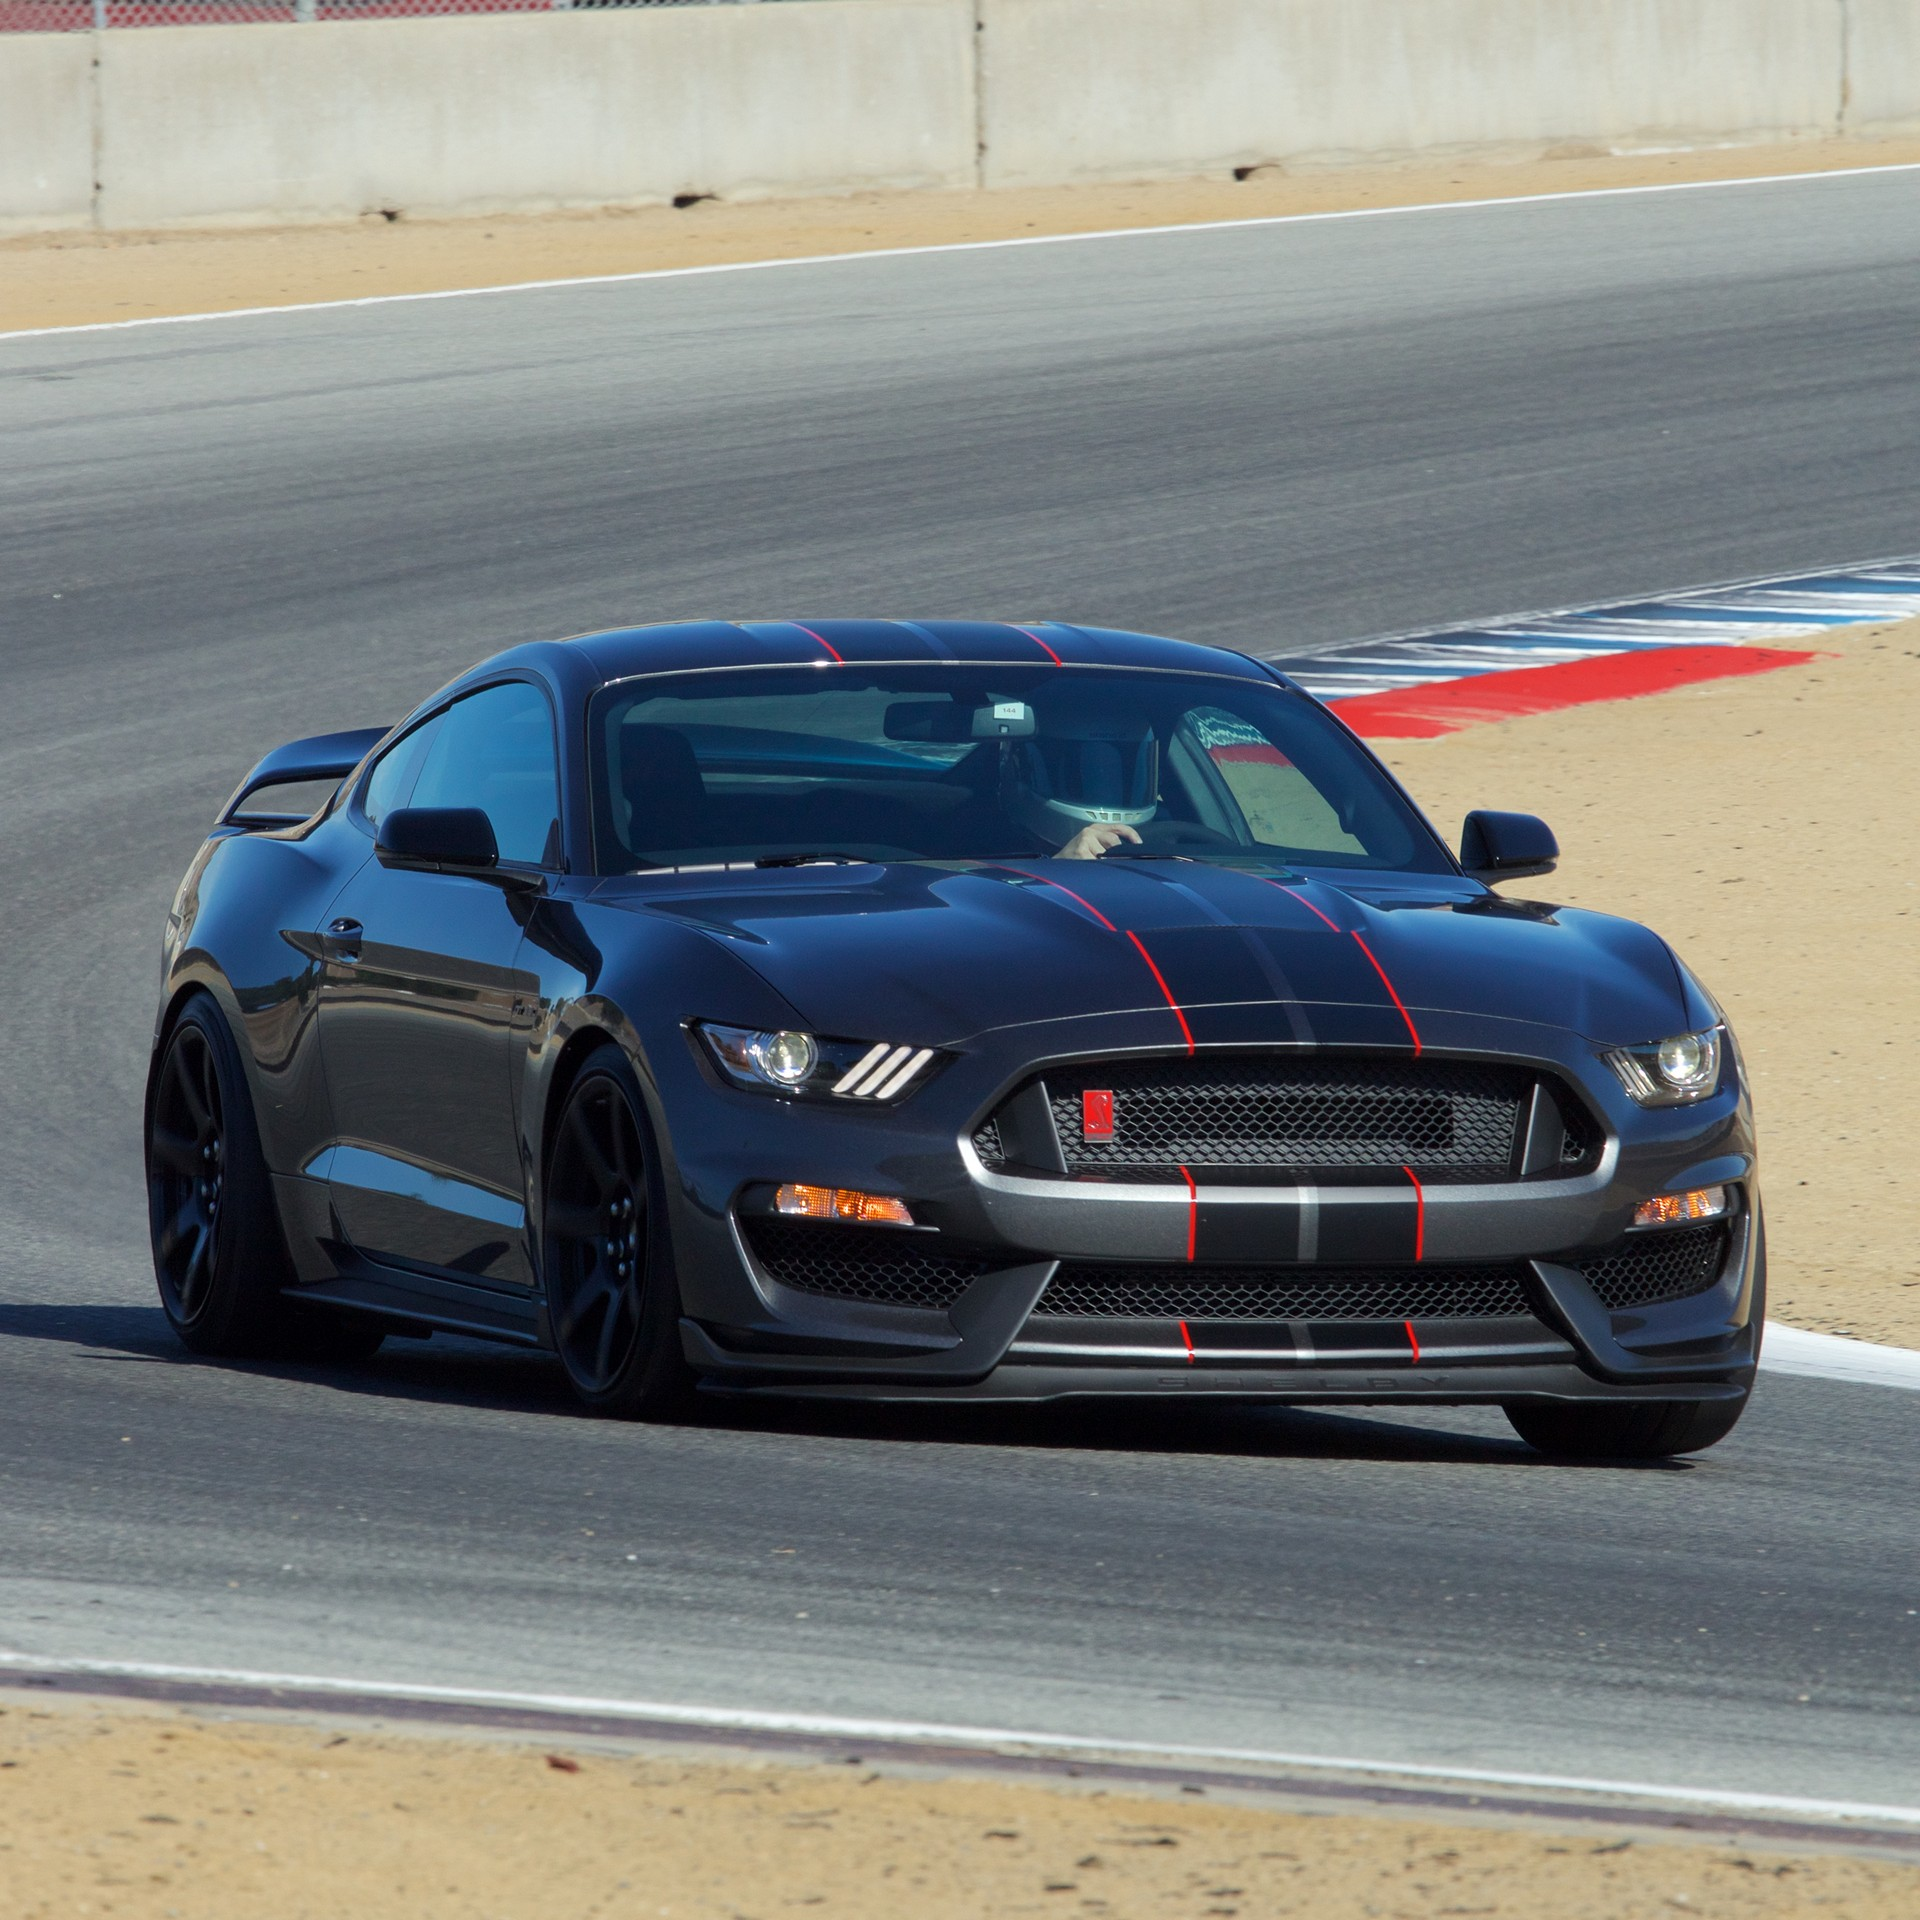 Gt350r Review >> 2016 Ford Shelby GT350 Mustang and 2016 Ford Shelby GT350R Mustang Review - Carrrs Auto Portal